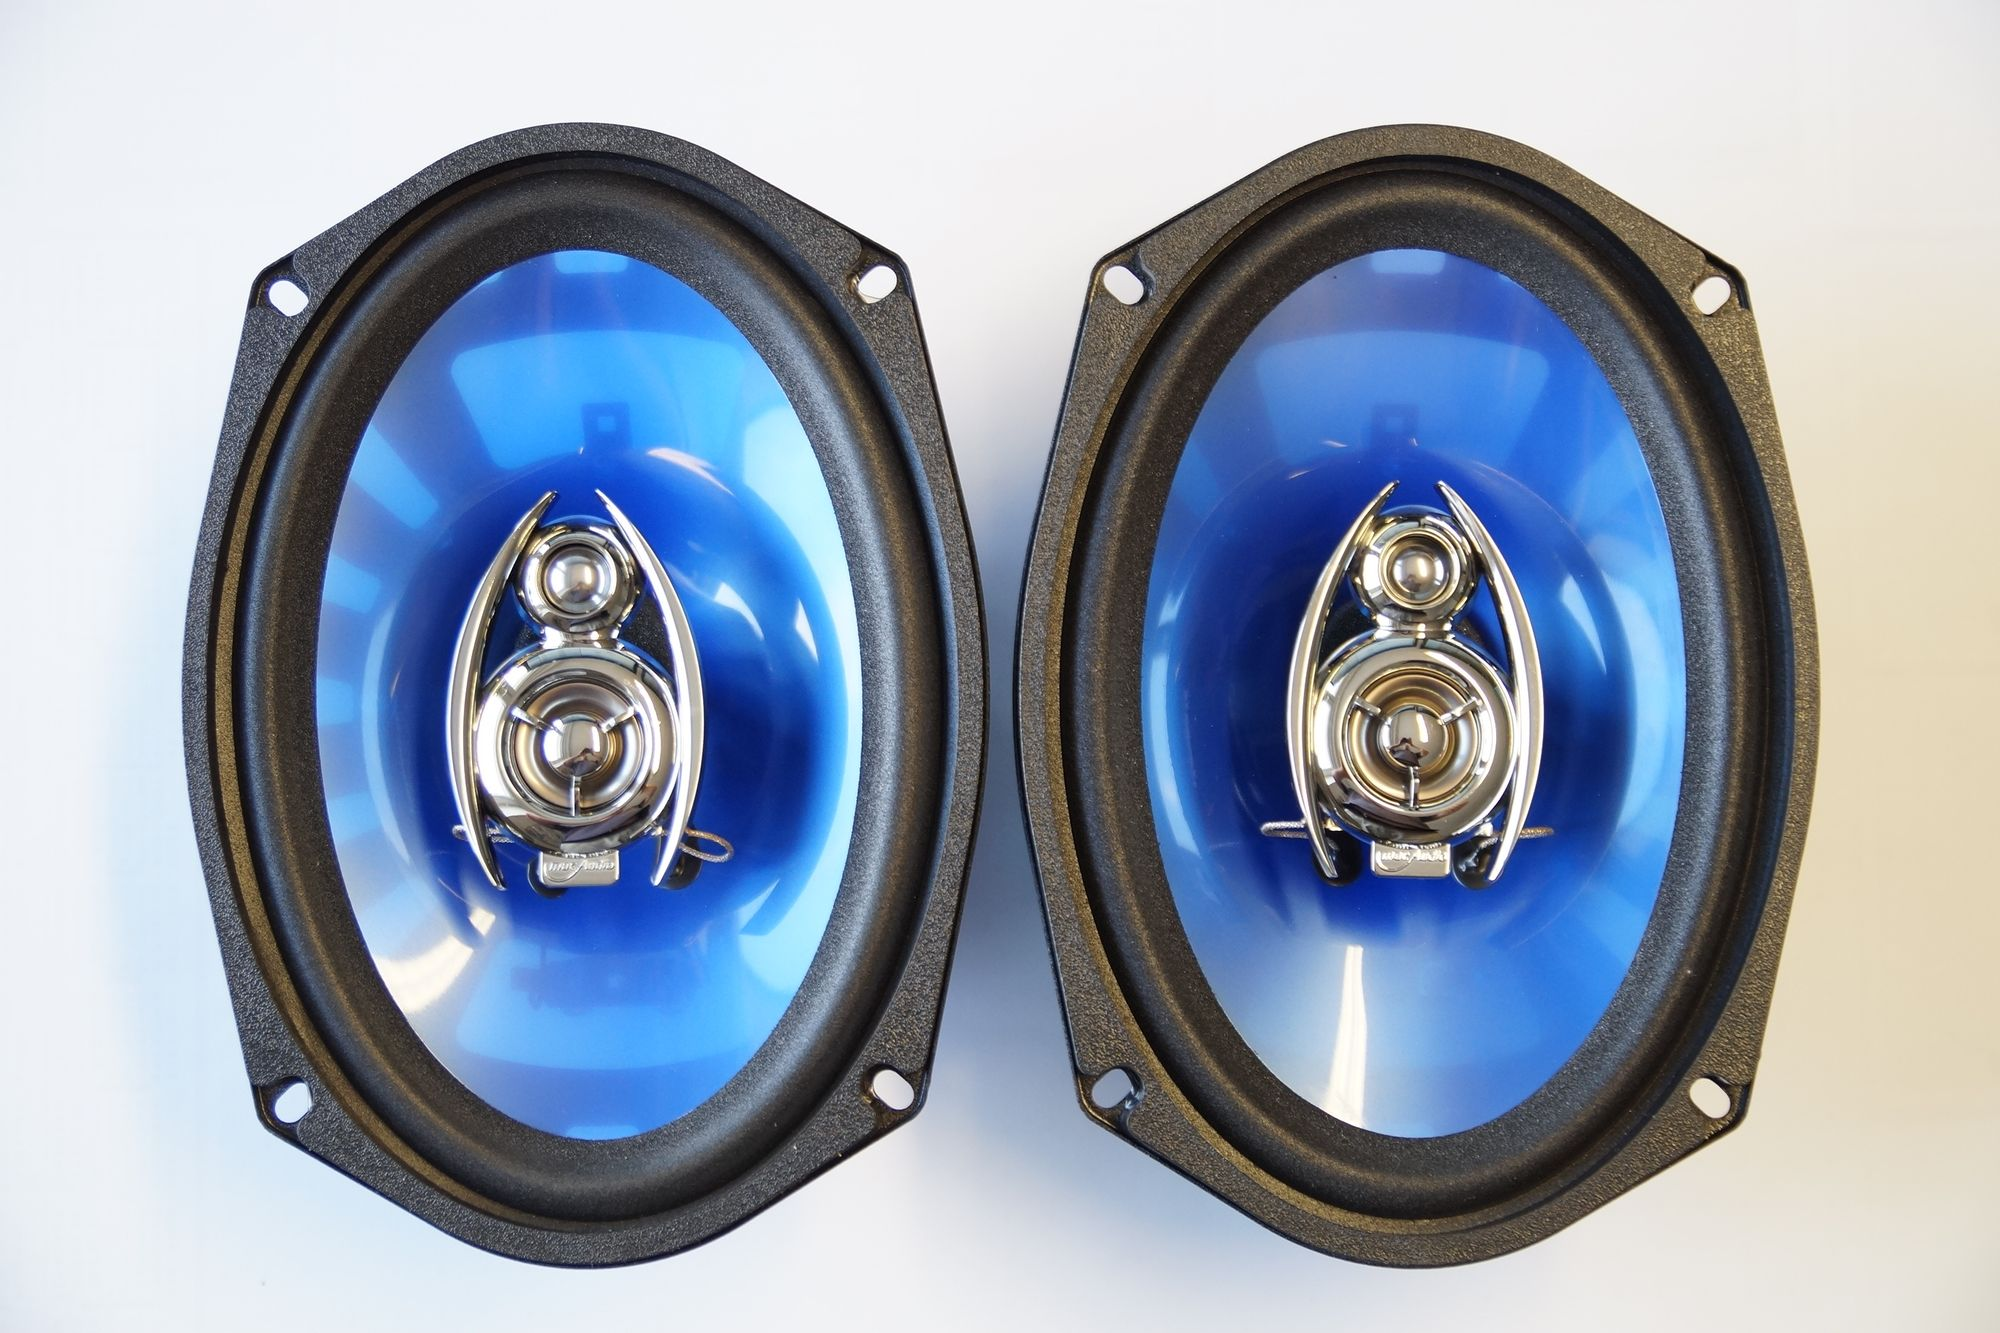 1 Paar 3-Wege 6x9 Zoll Triax System mac Audio Premium S 69.3 LED